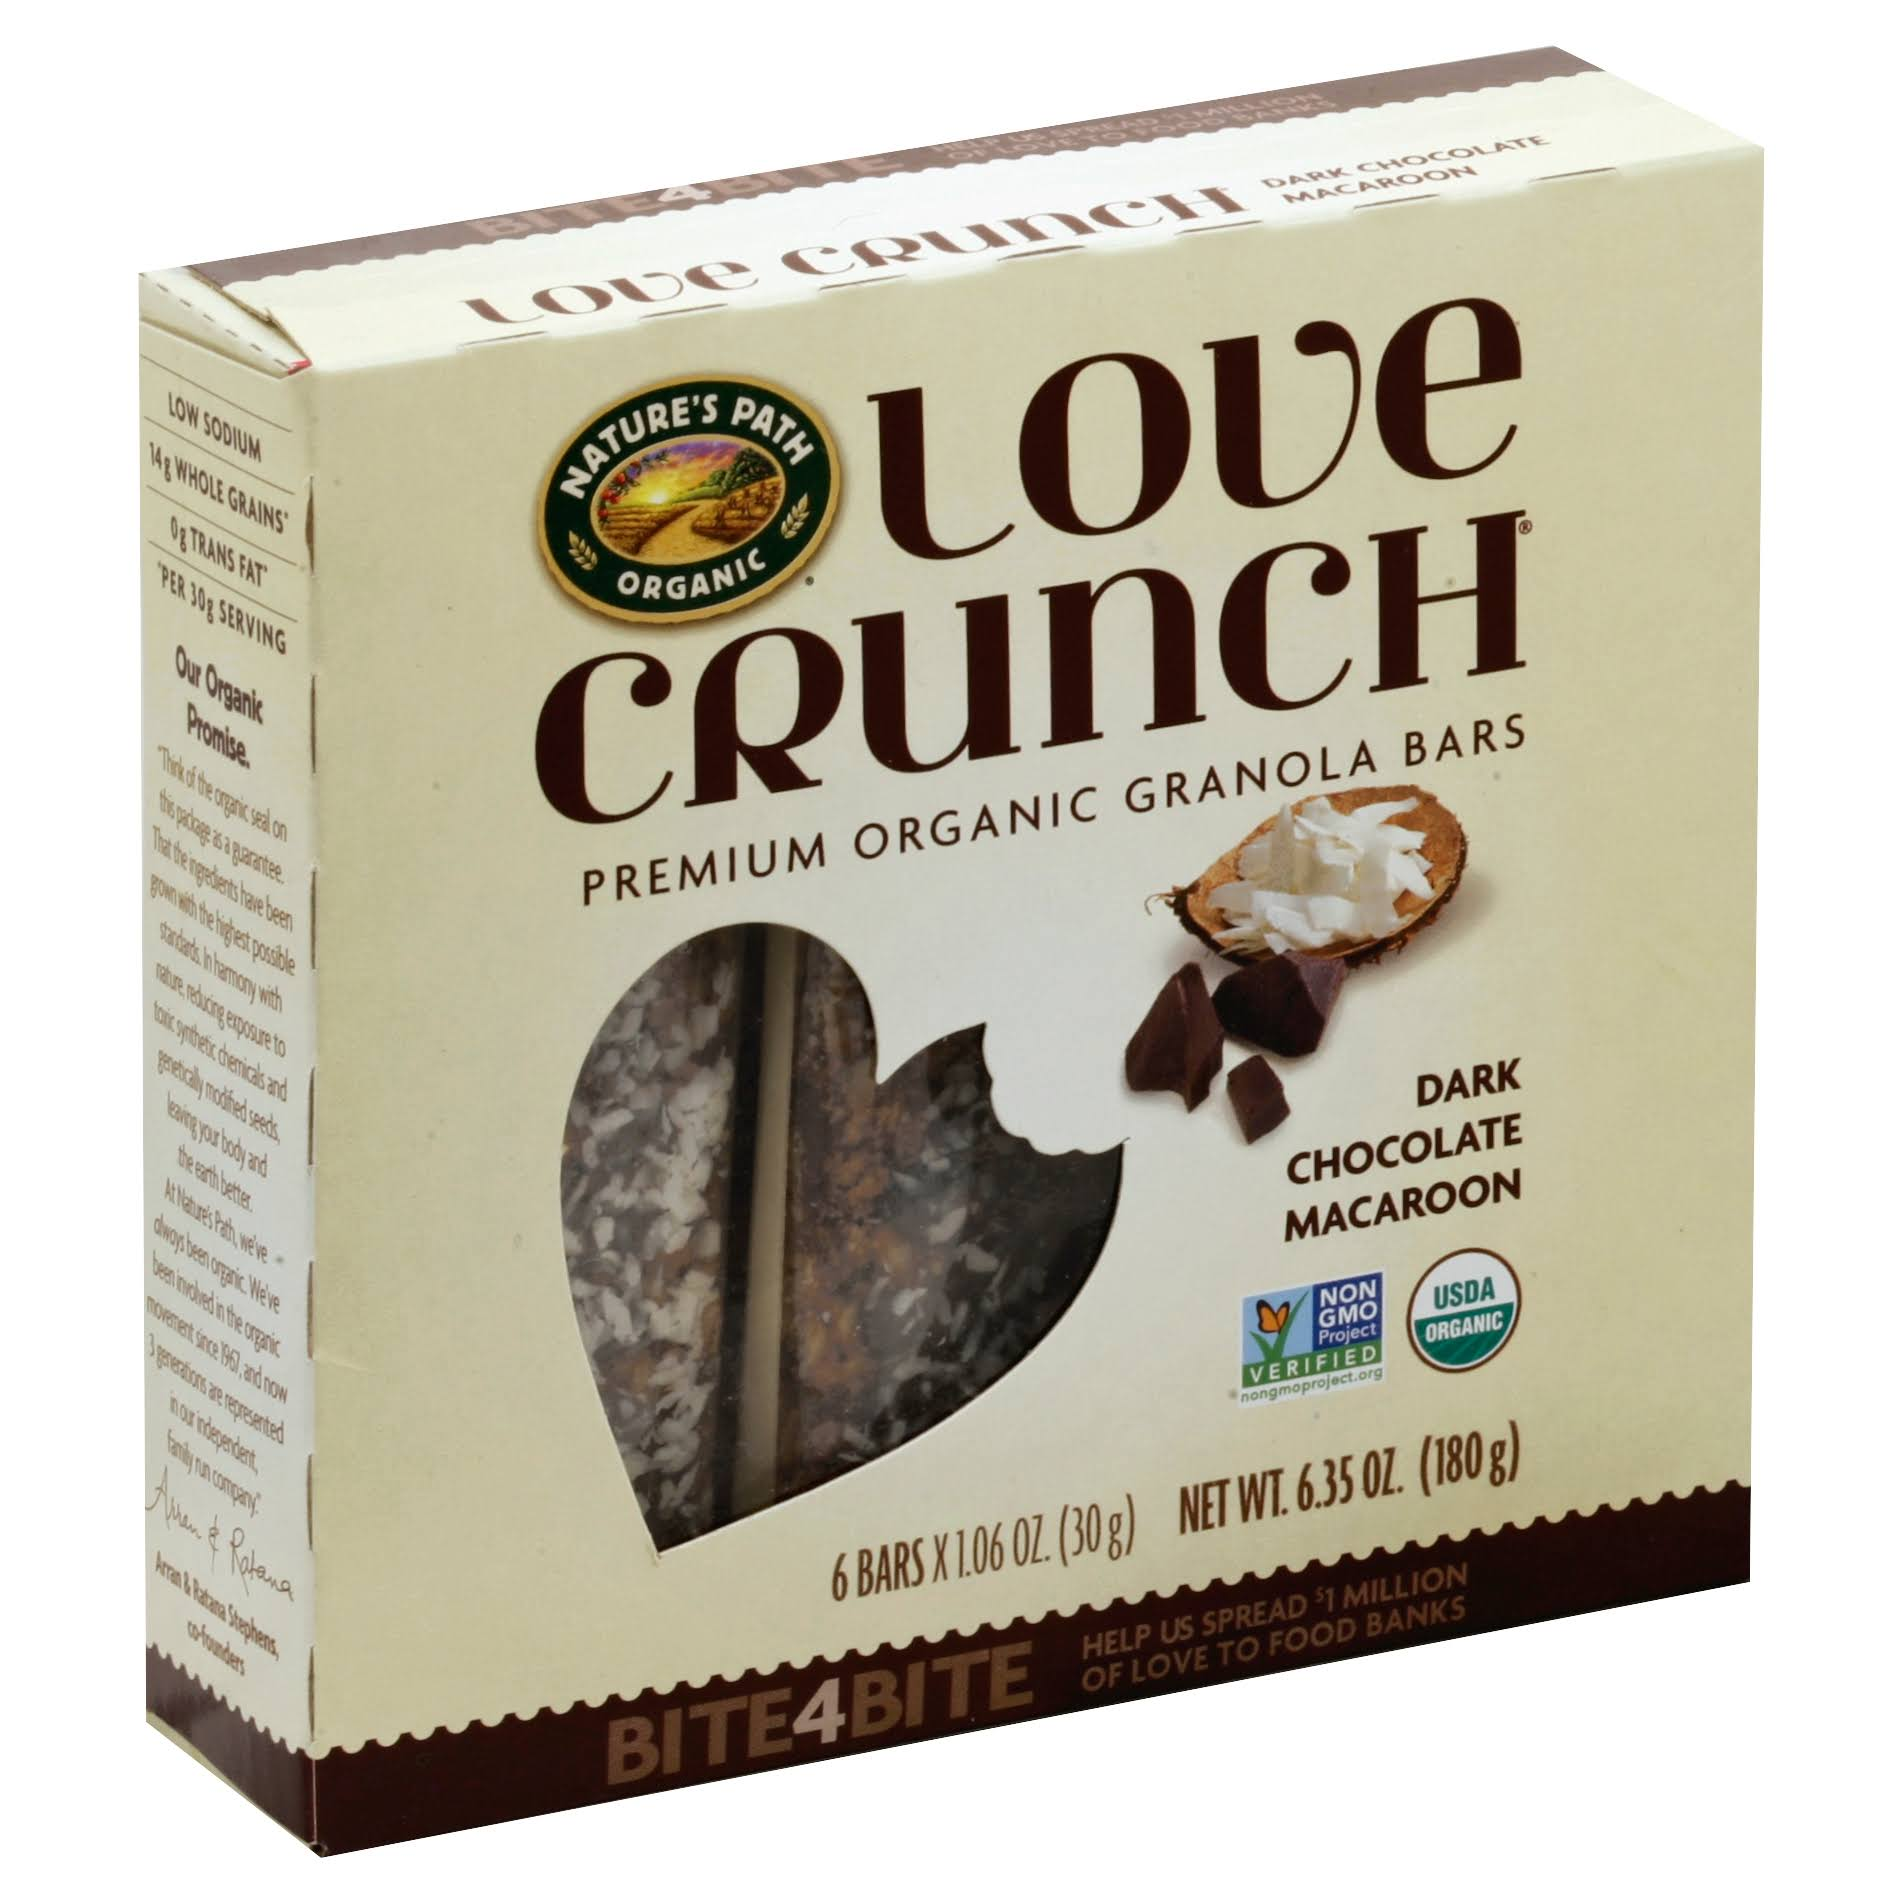 Natures Path Love Crunch Granola Bars, Dark Chocolate Macaroon - 6 pack, 1.06 oz bars